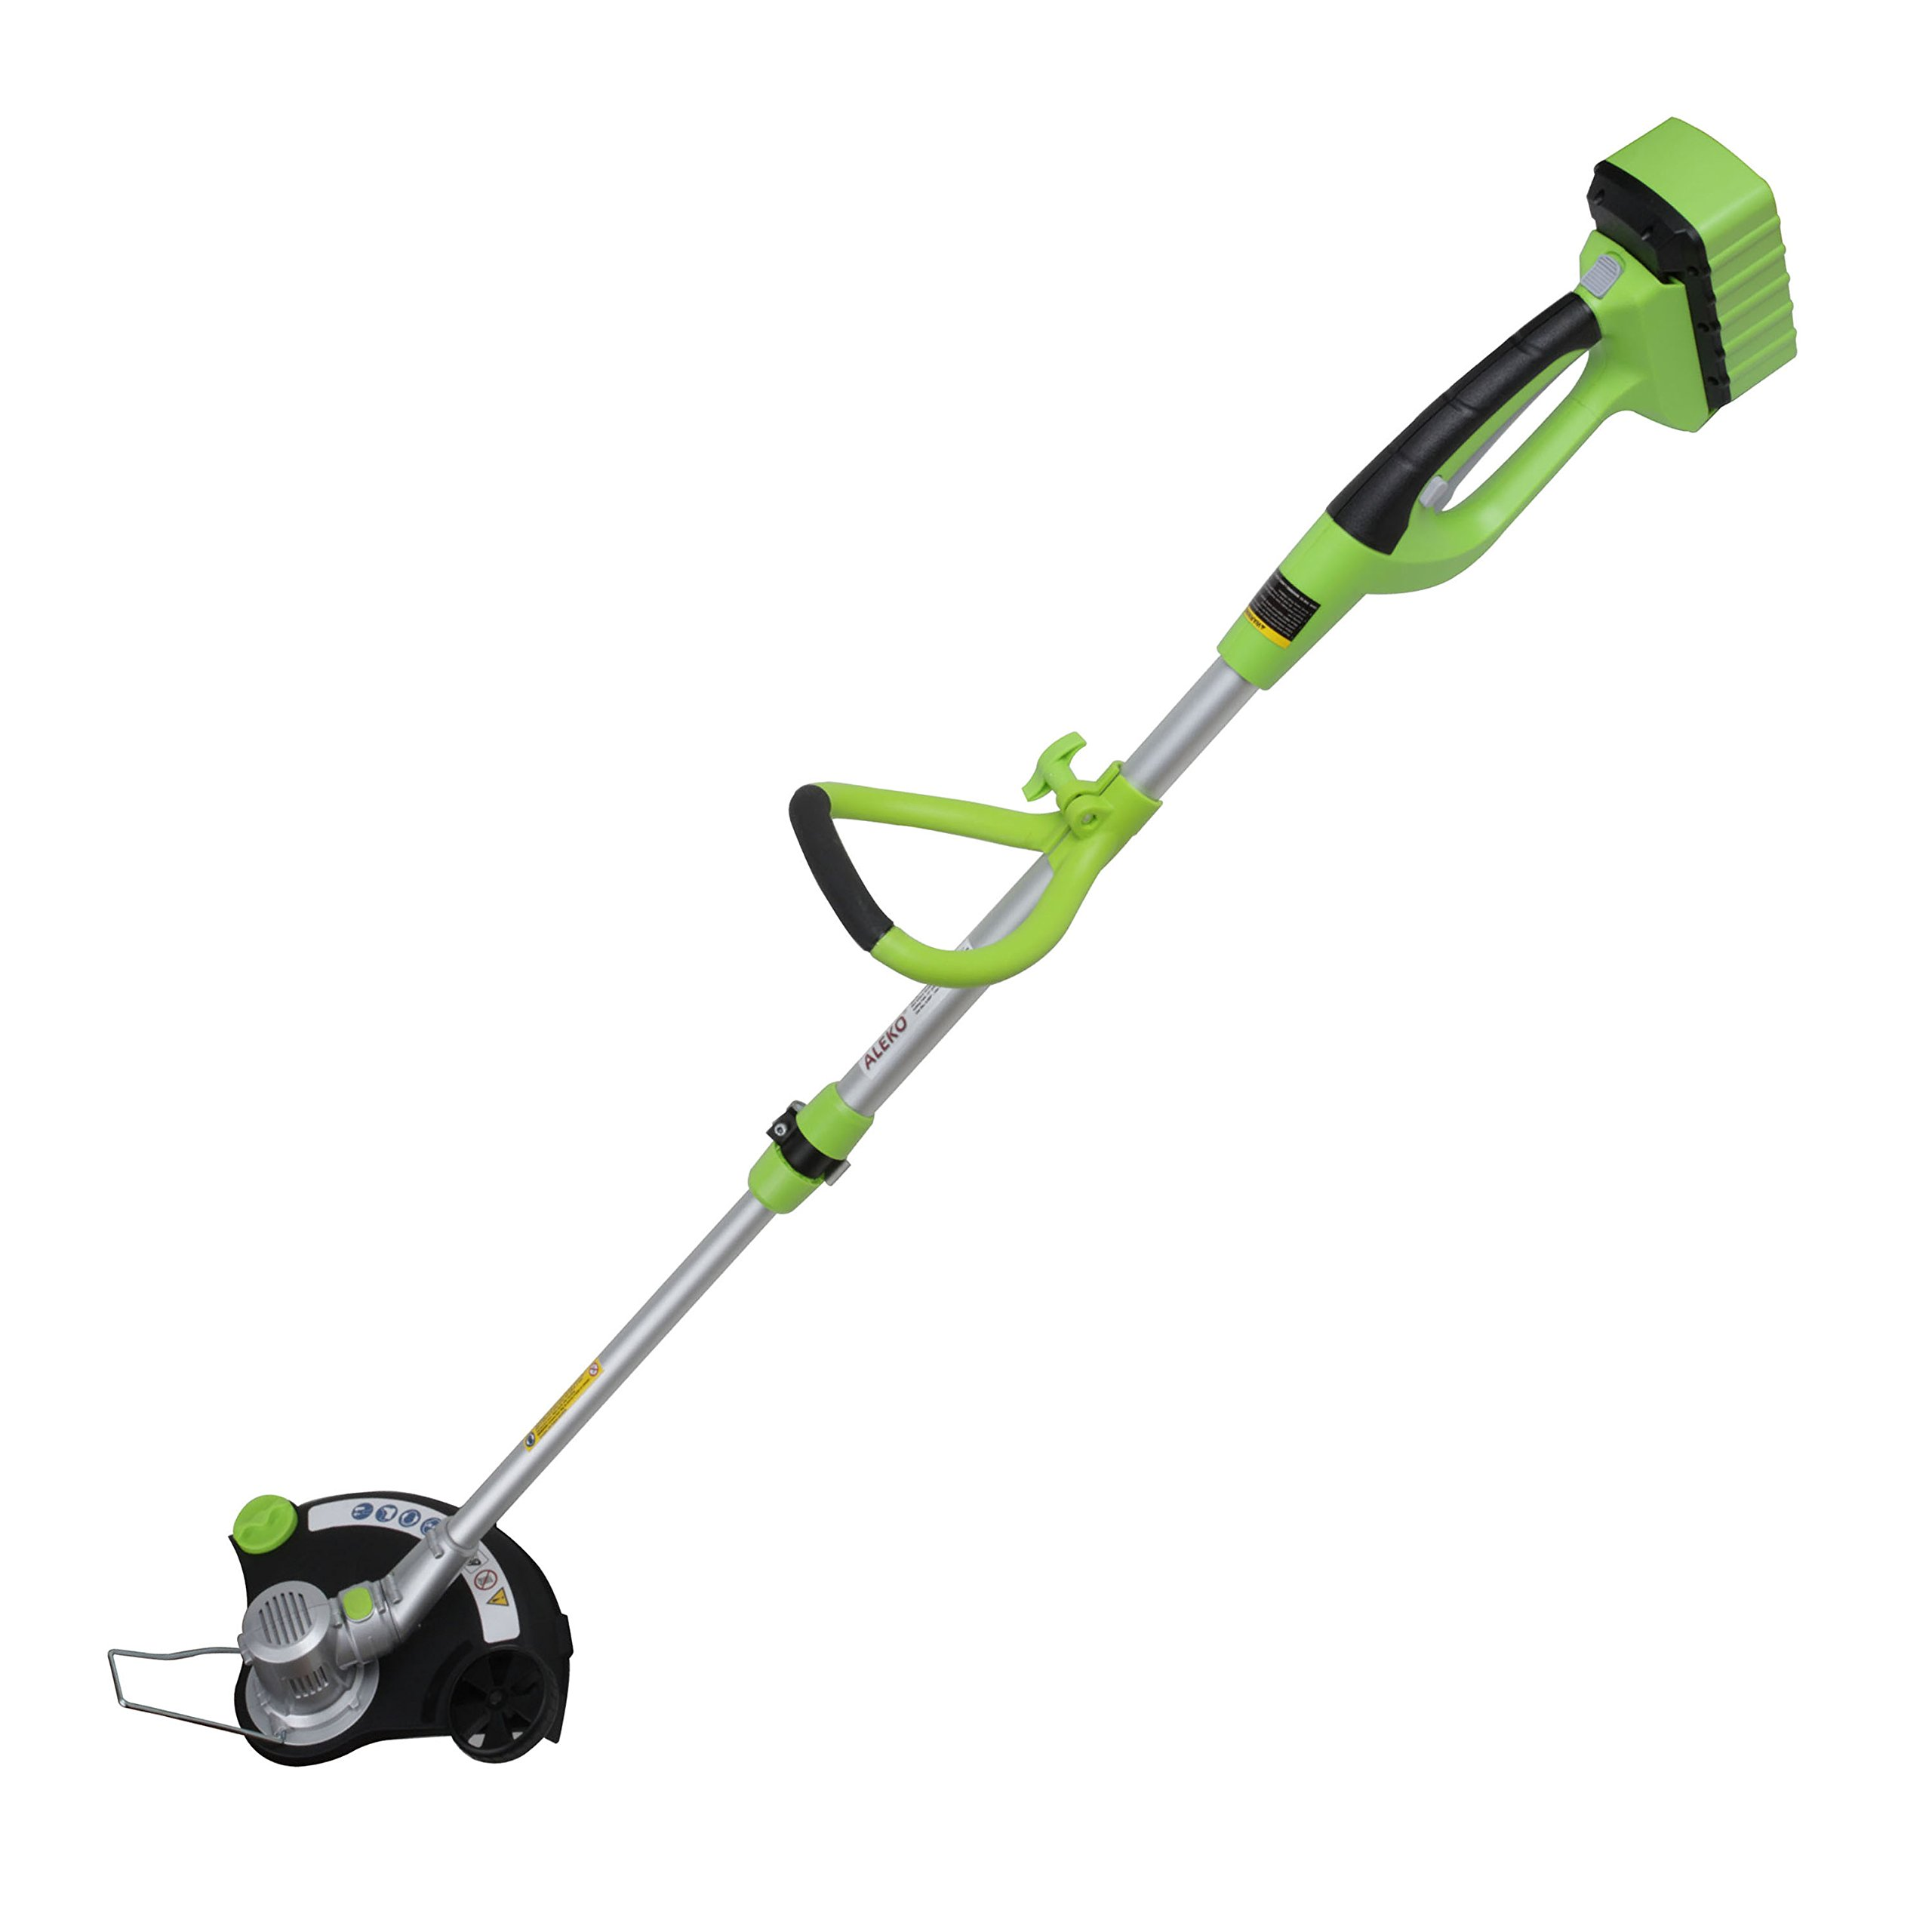 ALEKO G15242 Cordless 36V Handheld Grass Trimmer Weedwacker with Battery and Charger